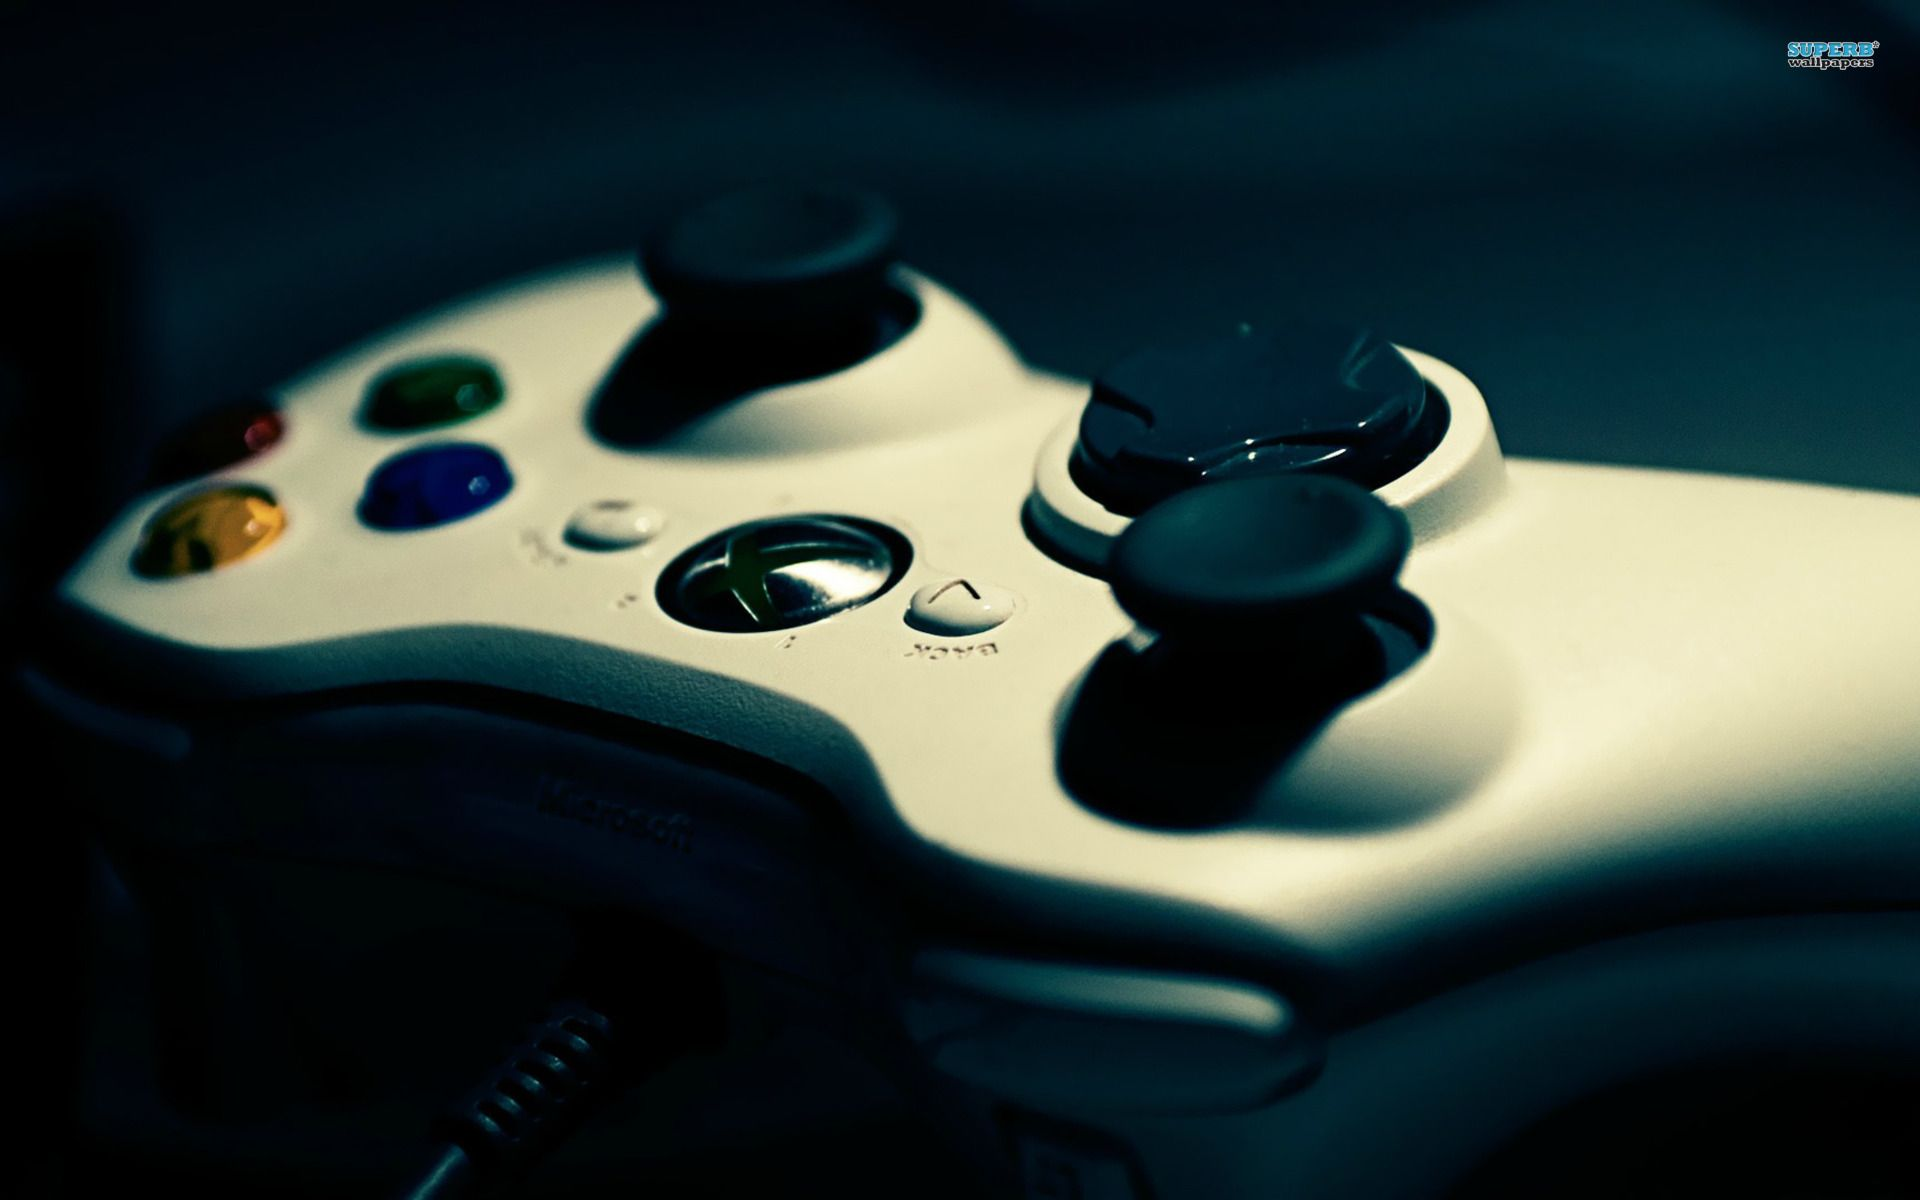 Xbox Cool Controller Wallpaper Artistic Wallpapers 15185 Xbox